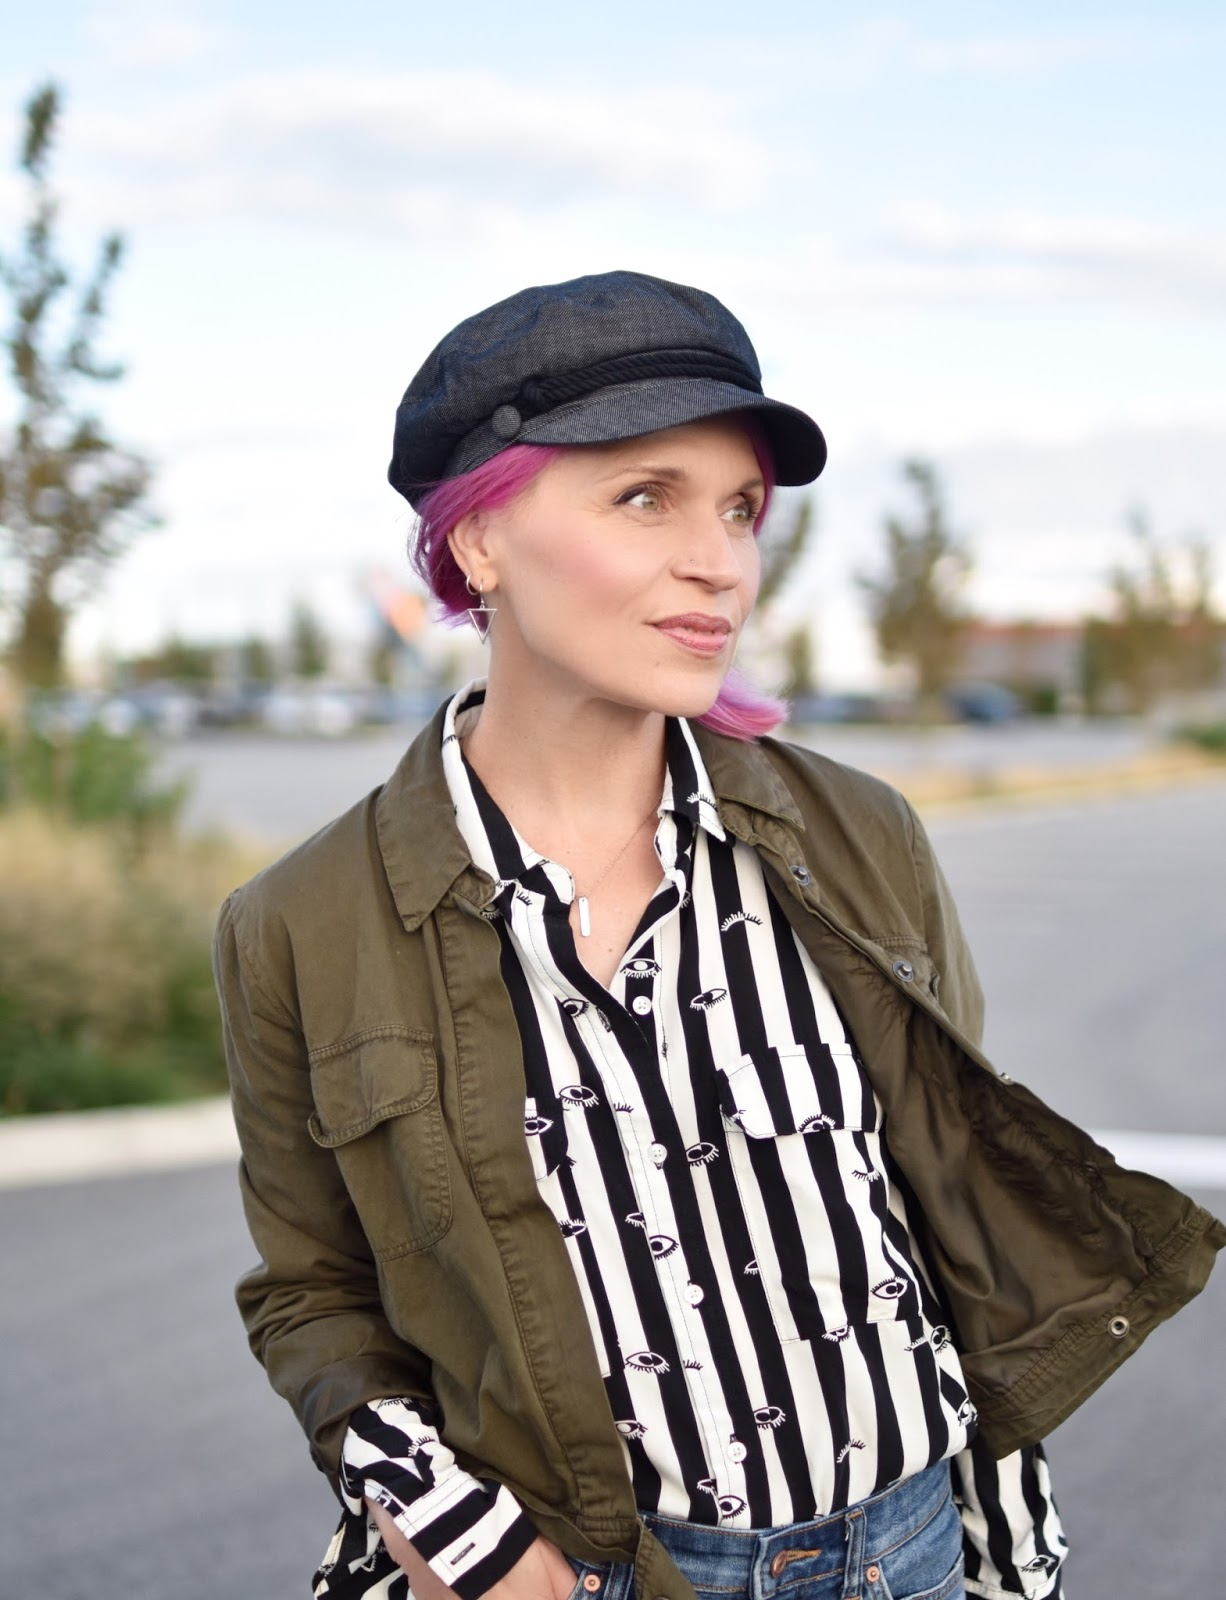 Monika Faulkner outfit inspiration - black-and-white striped shirt, olive cargo jacket, baker boy hat